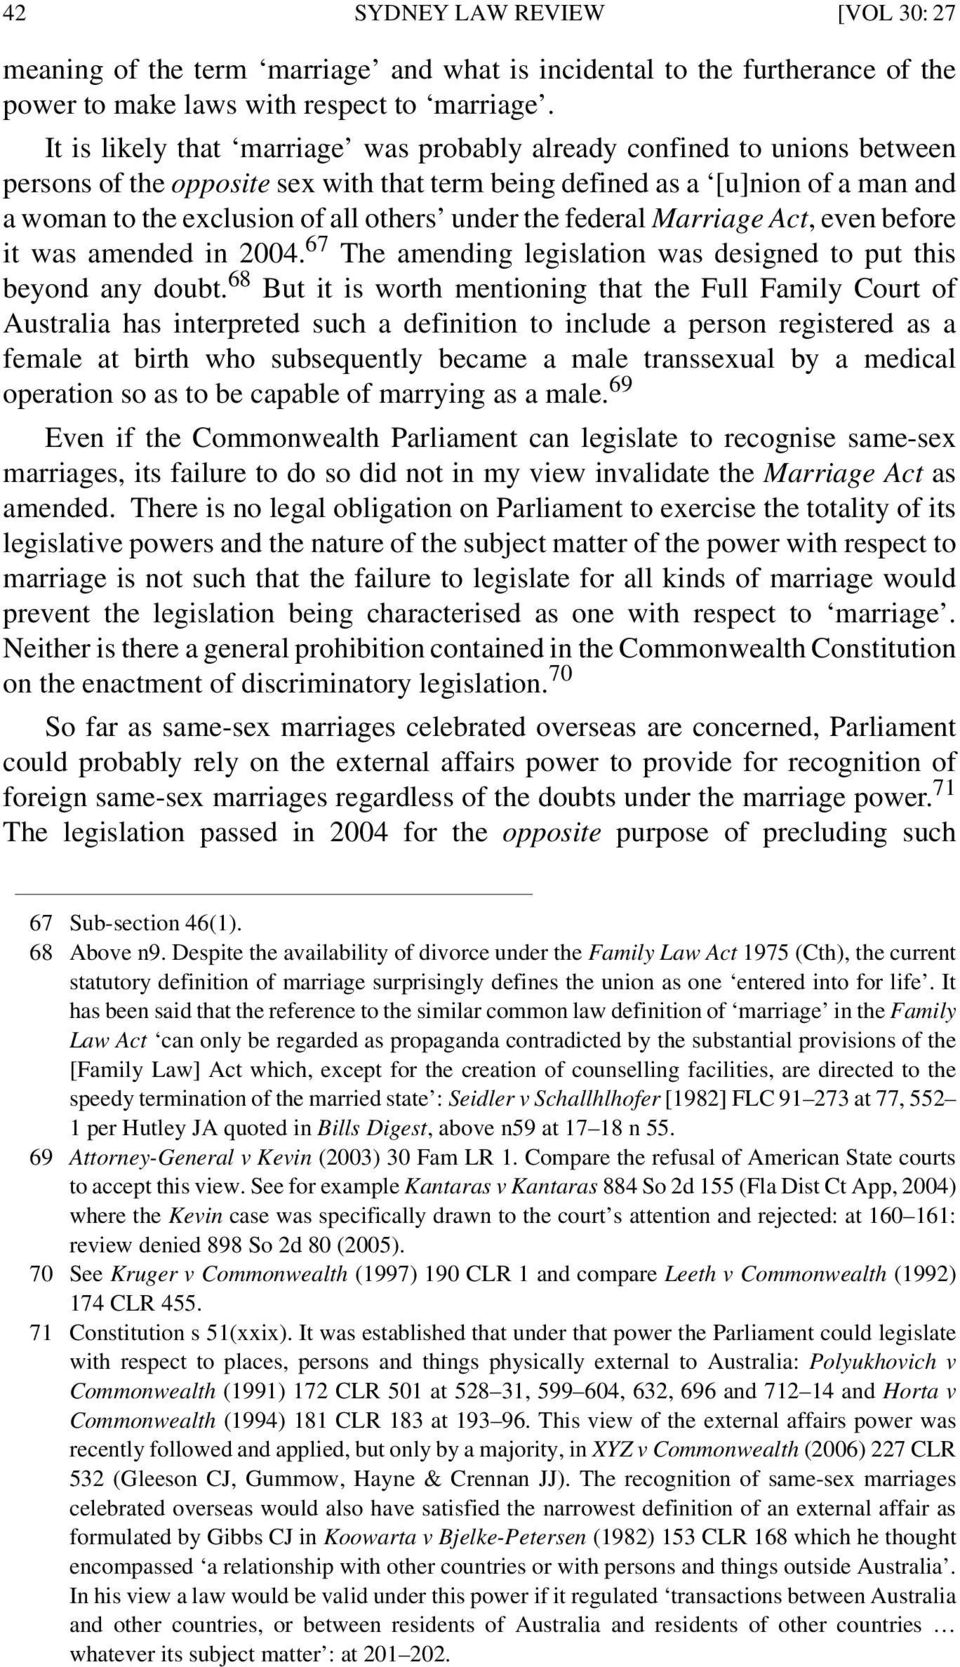 under the federal Marriage Act, even before it was amended in 2004. 67 The amending legislation was designed to put this beyond any doubt.